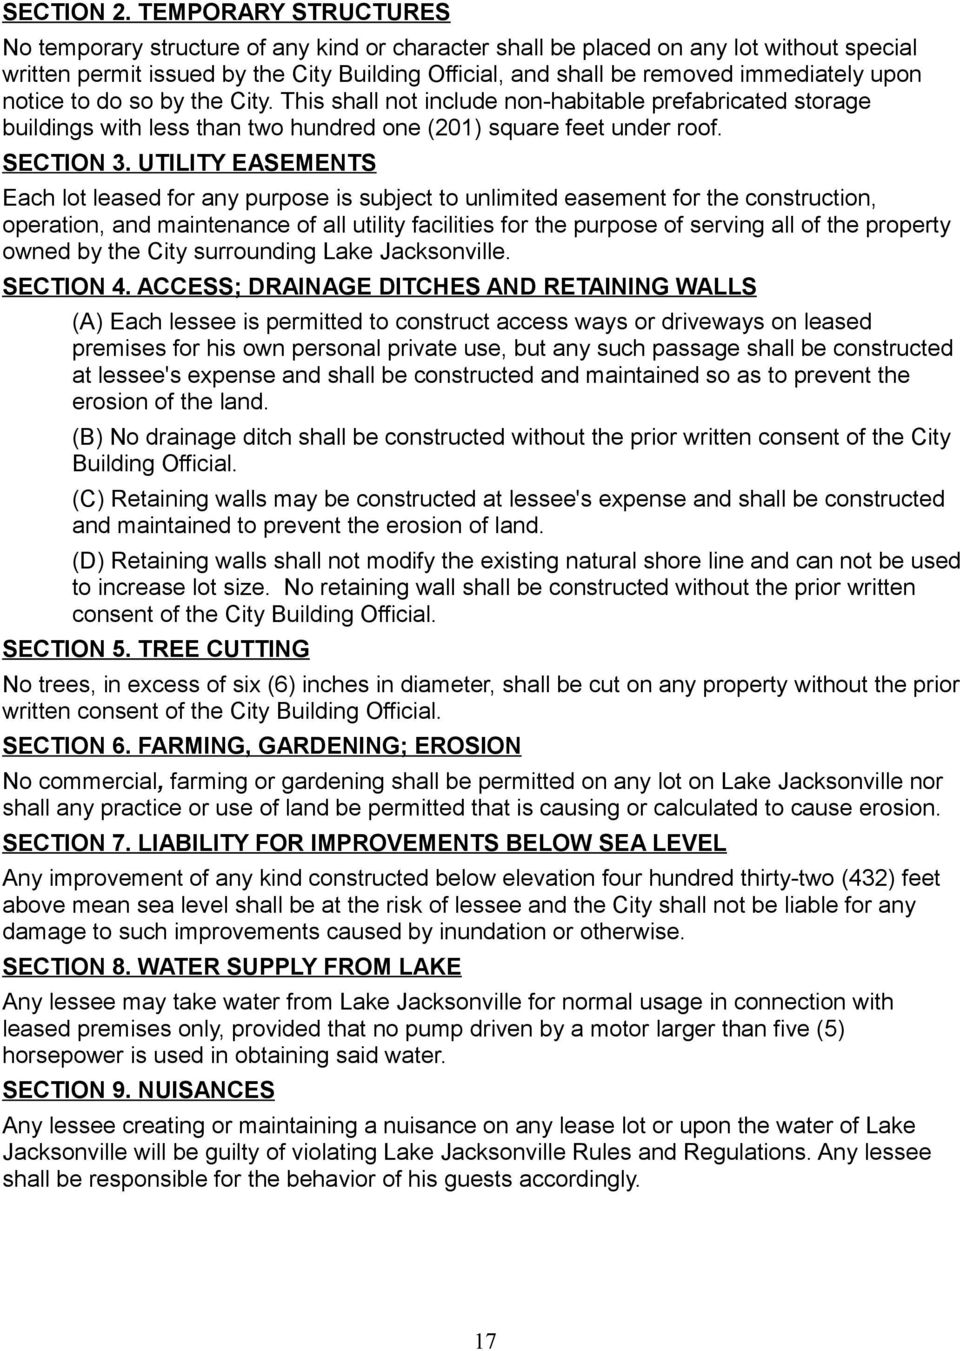 upon notice to do so by the City. This shall not include non-habitable prefabricated storage buildings with less than two hundred one (201) square feet under roof. SECTION 3.